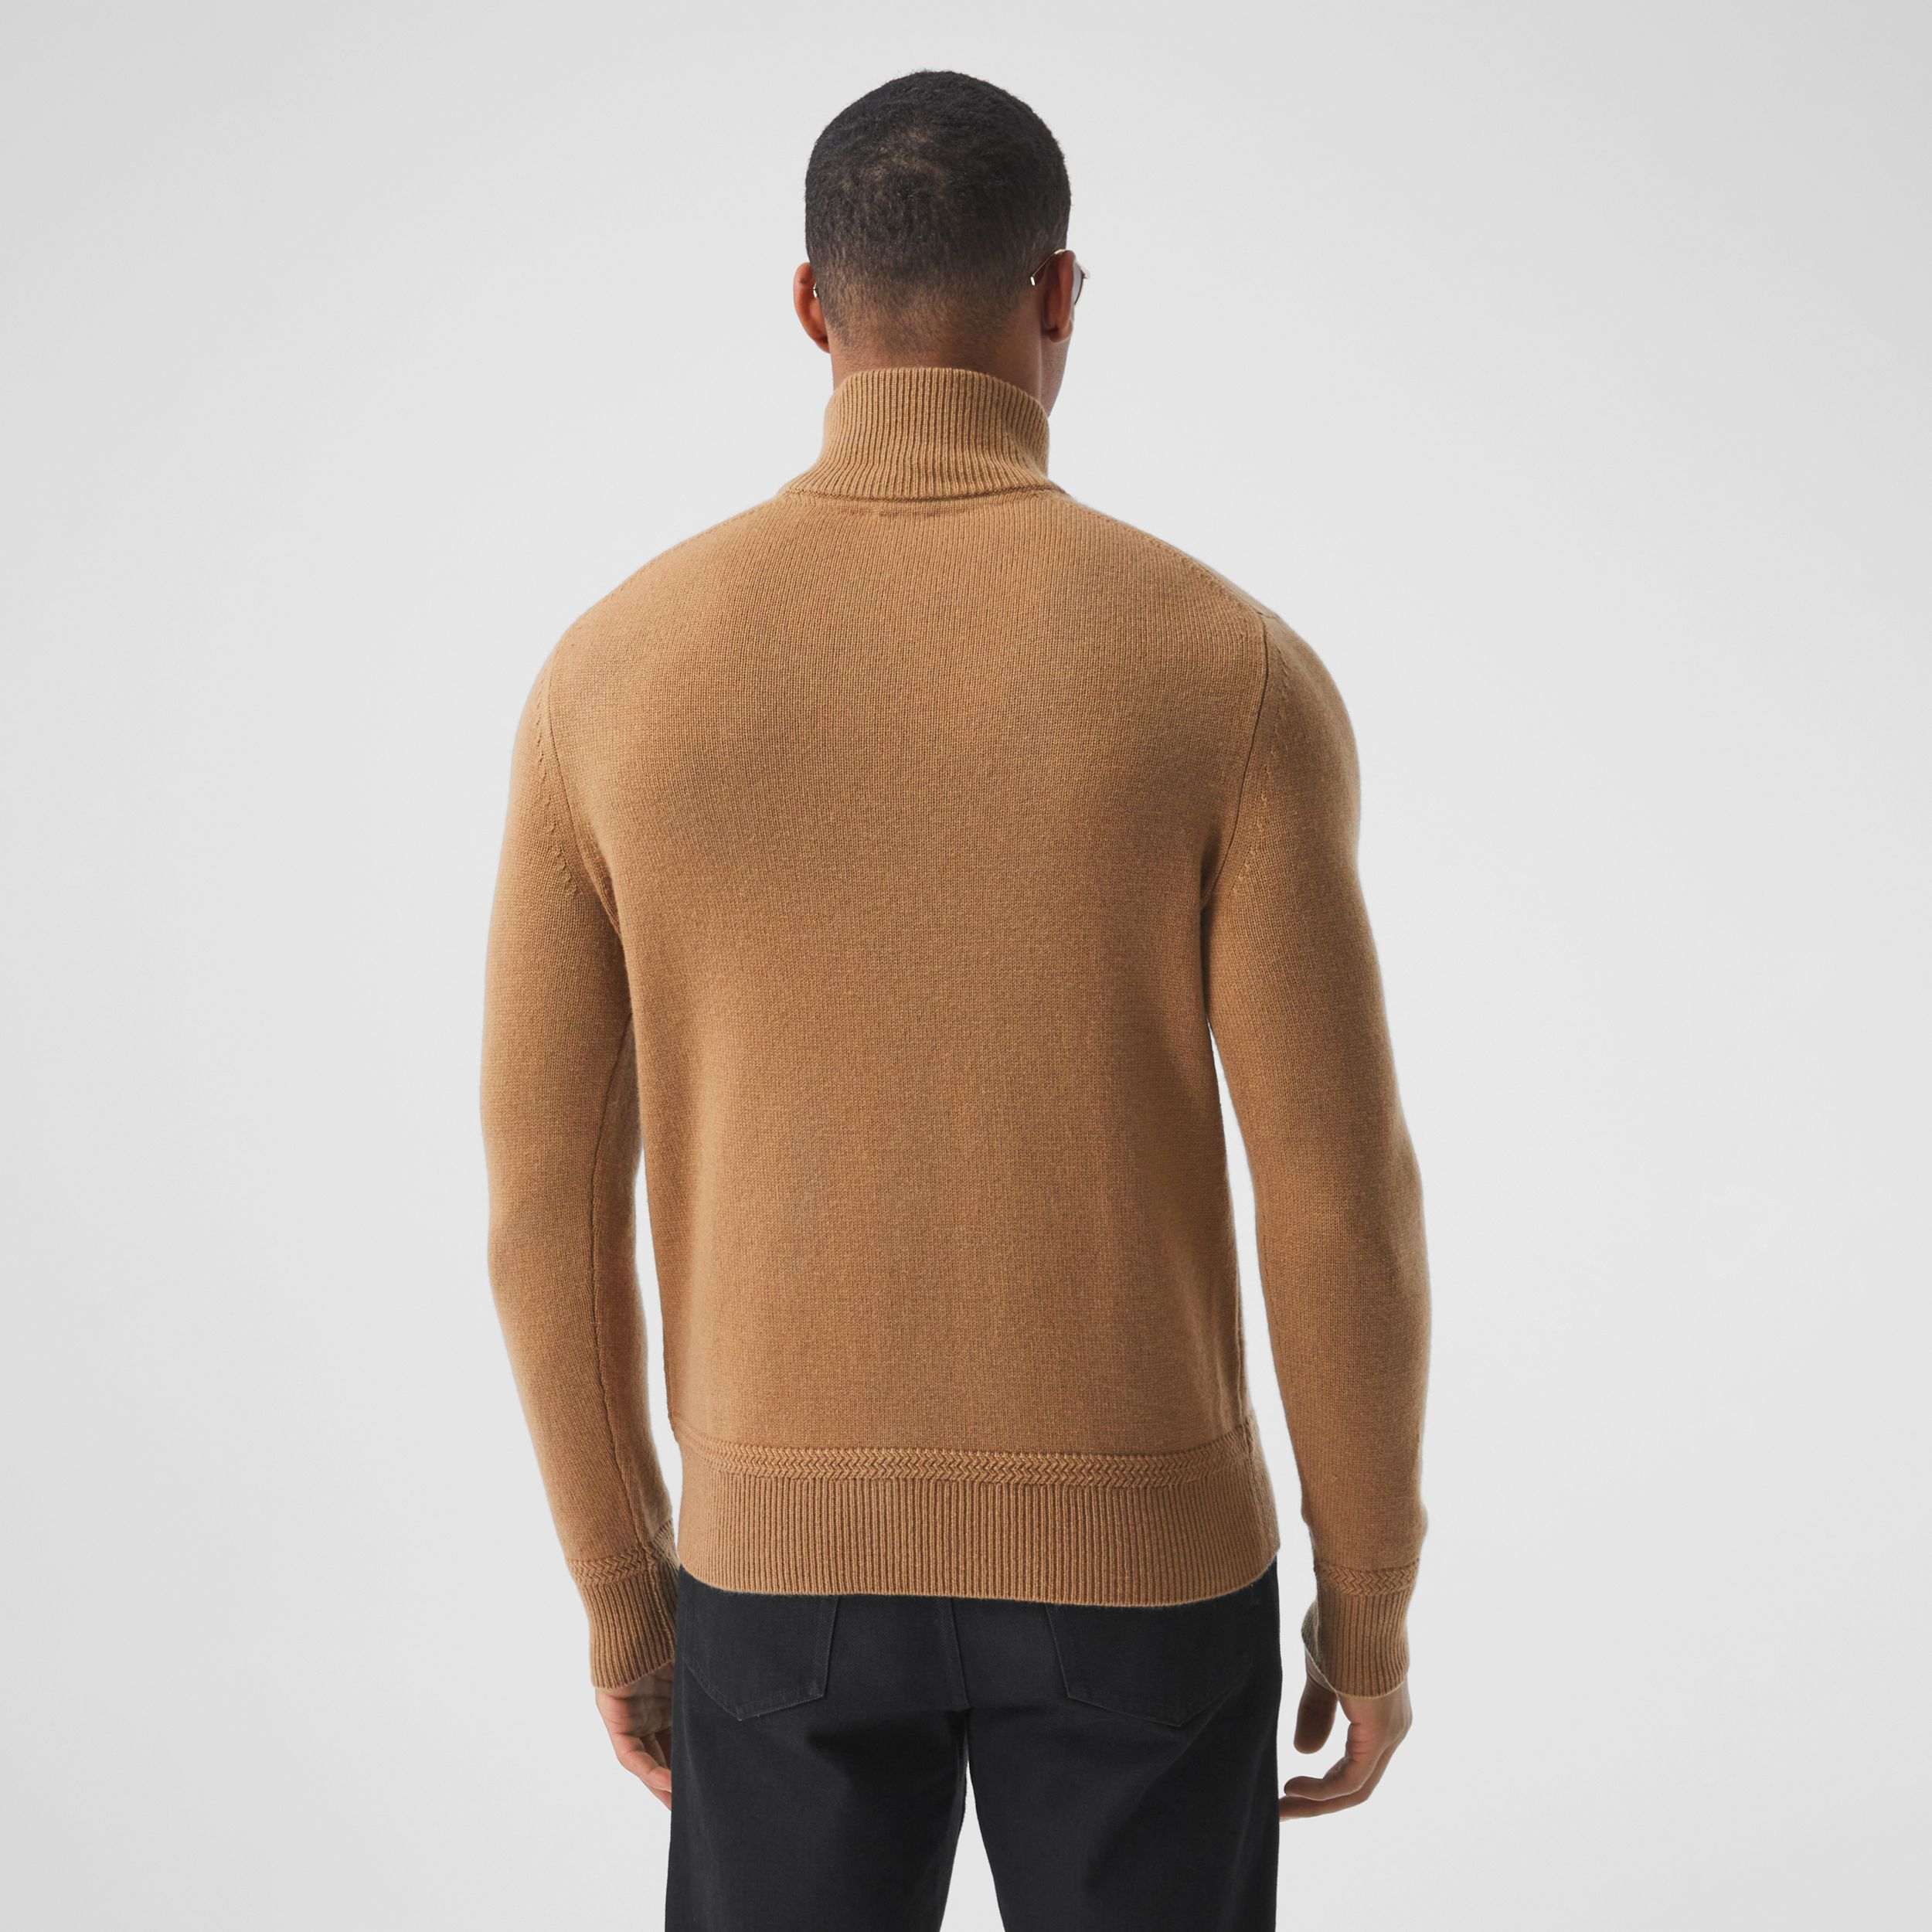 Monogram Motif Cashmere Funnel Neck Sweater in Camel - Men | Burberry Hong Kong S.A.R. - 3